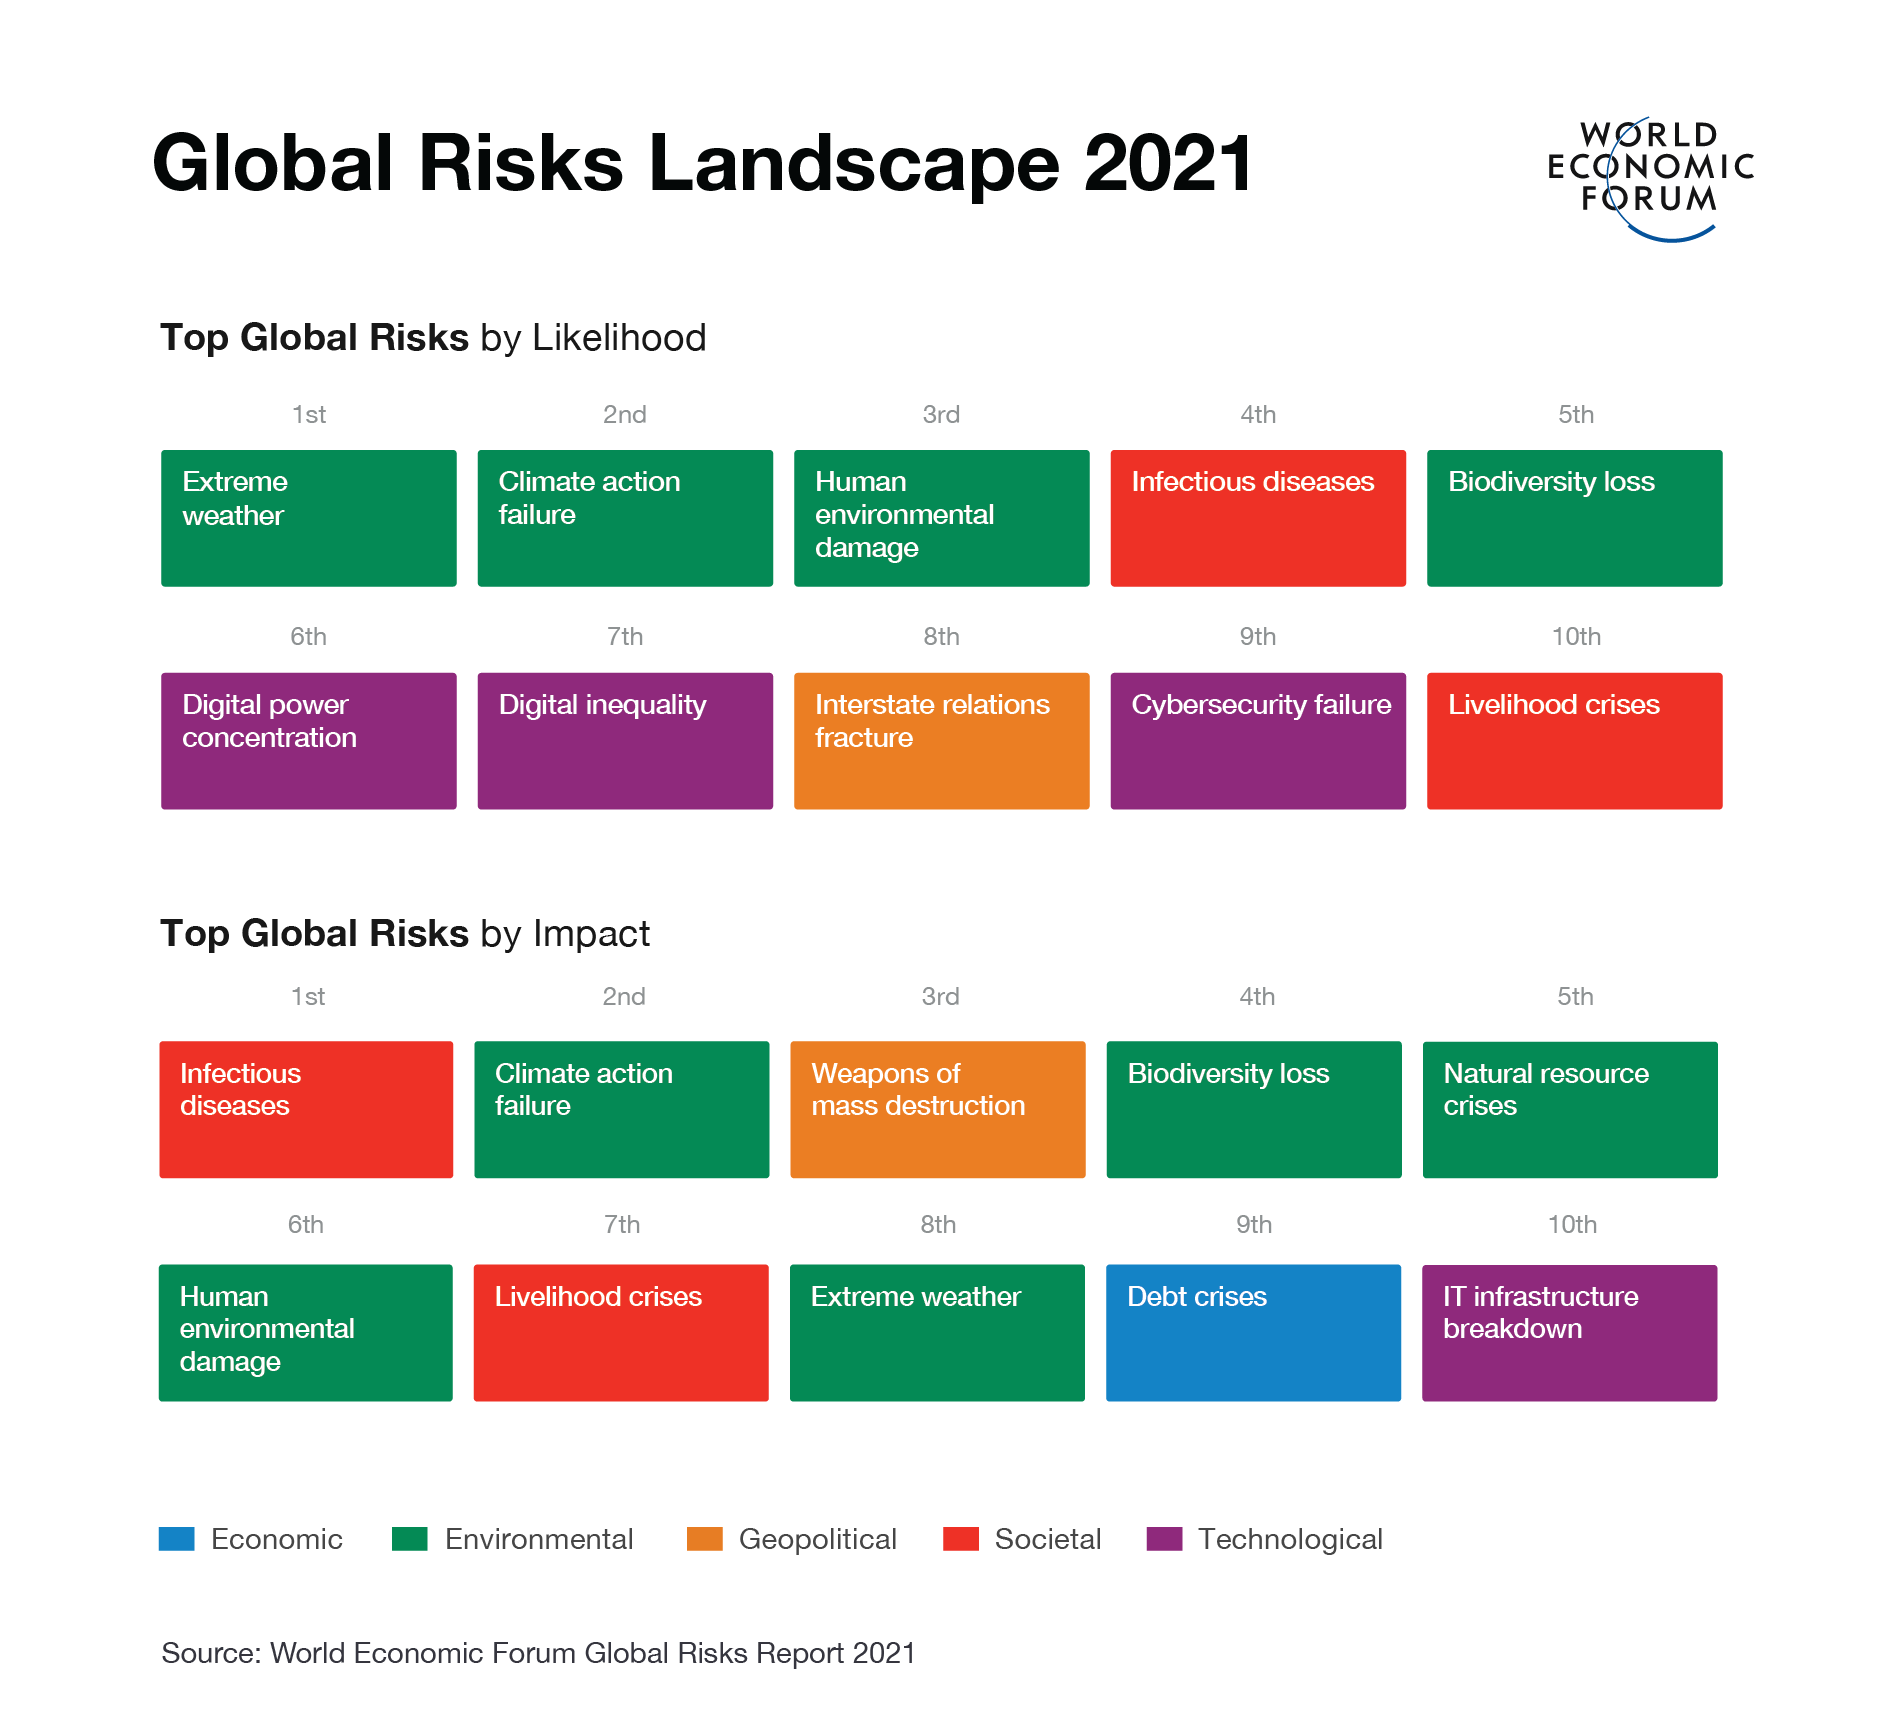 Top global risks in 2021 by likelihood and impact